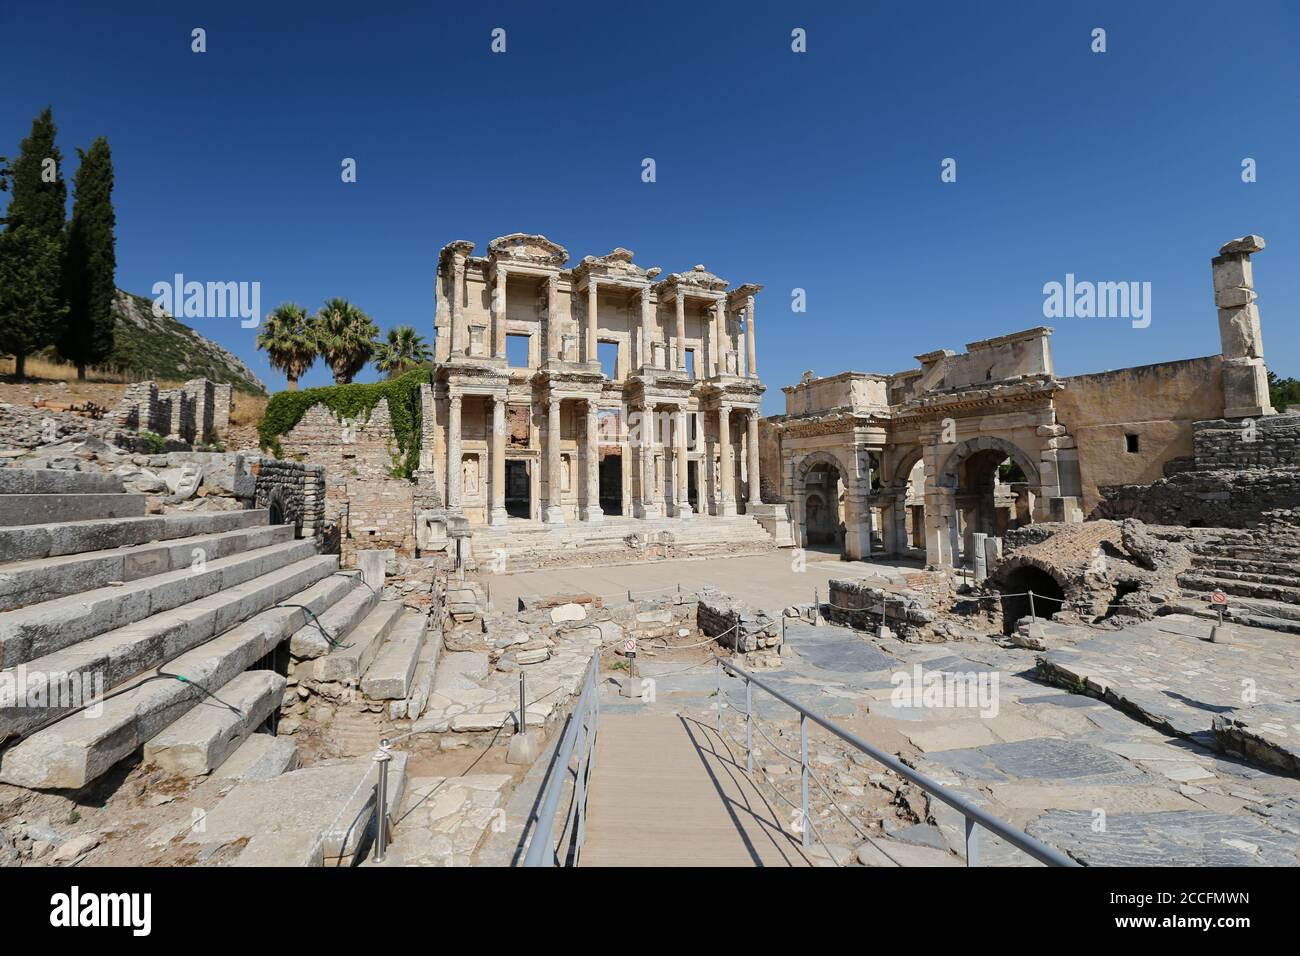 Library Of Celsus In Ephesus Ancient City Selcuk Town Izmir City Turkey Stock Photo Alamy